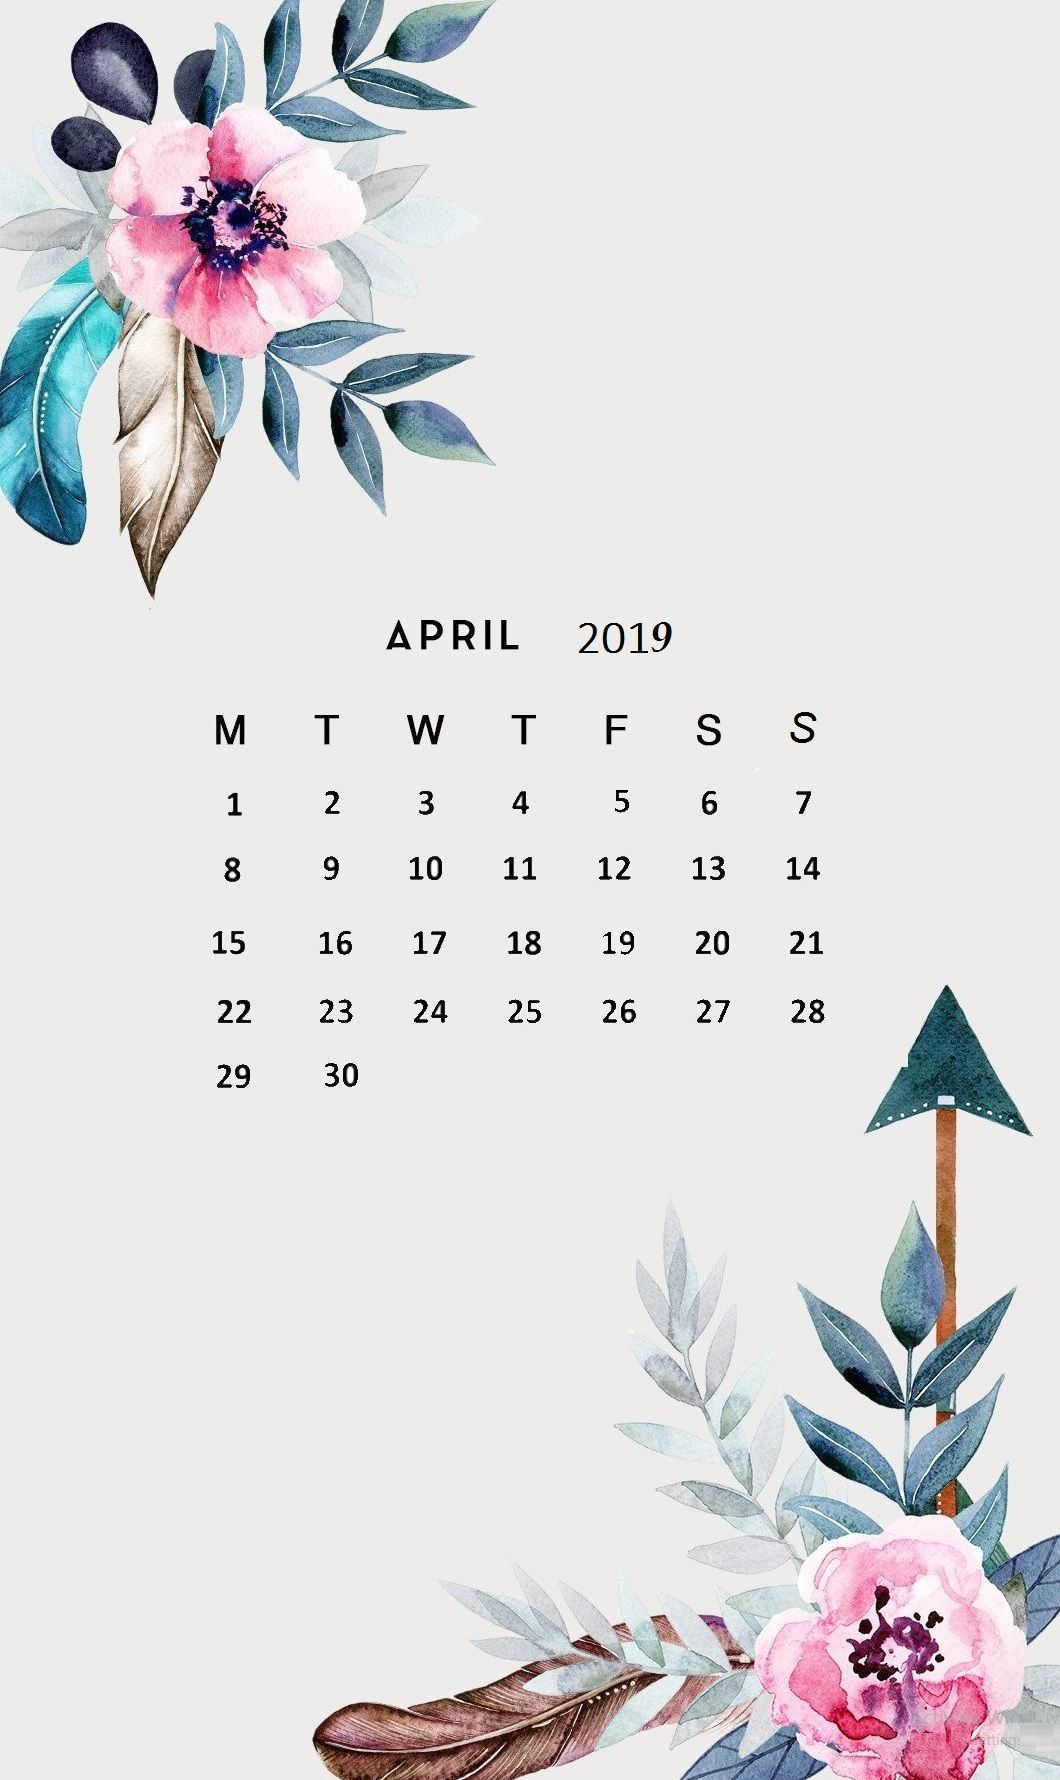 Flower April 2019 Iphone Calendar Wallpaper - Printable Calendar